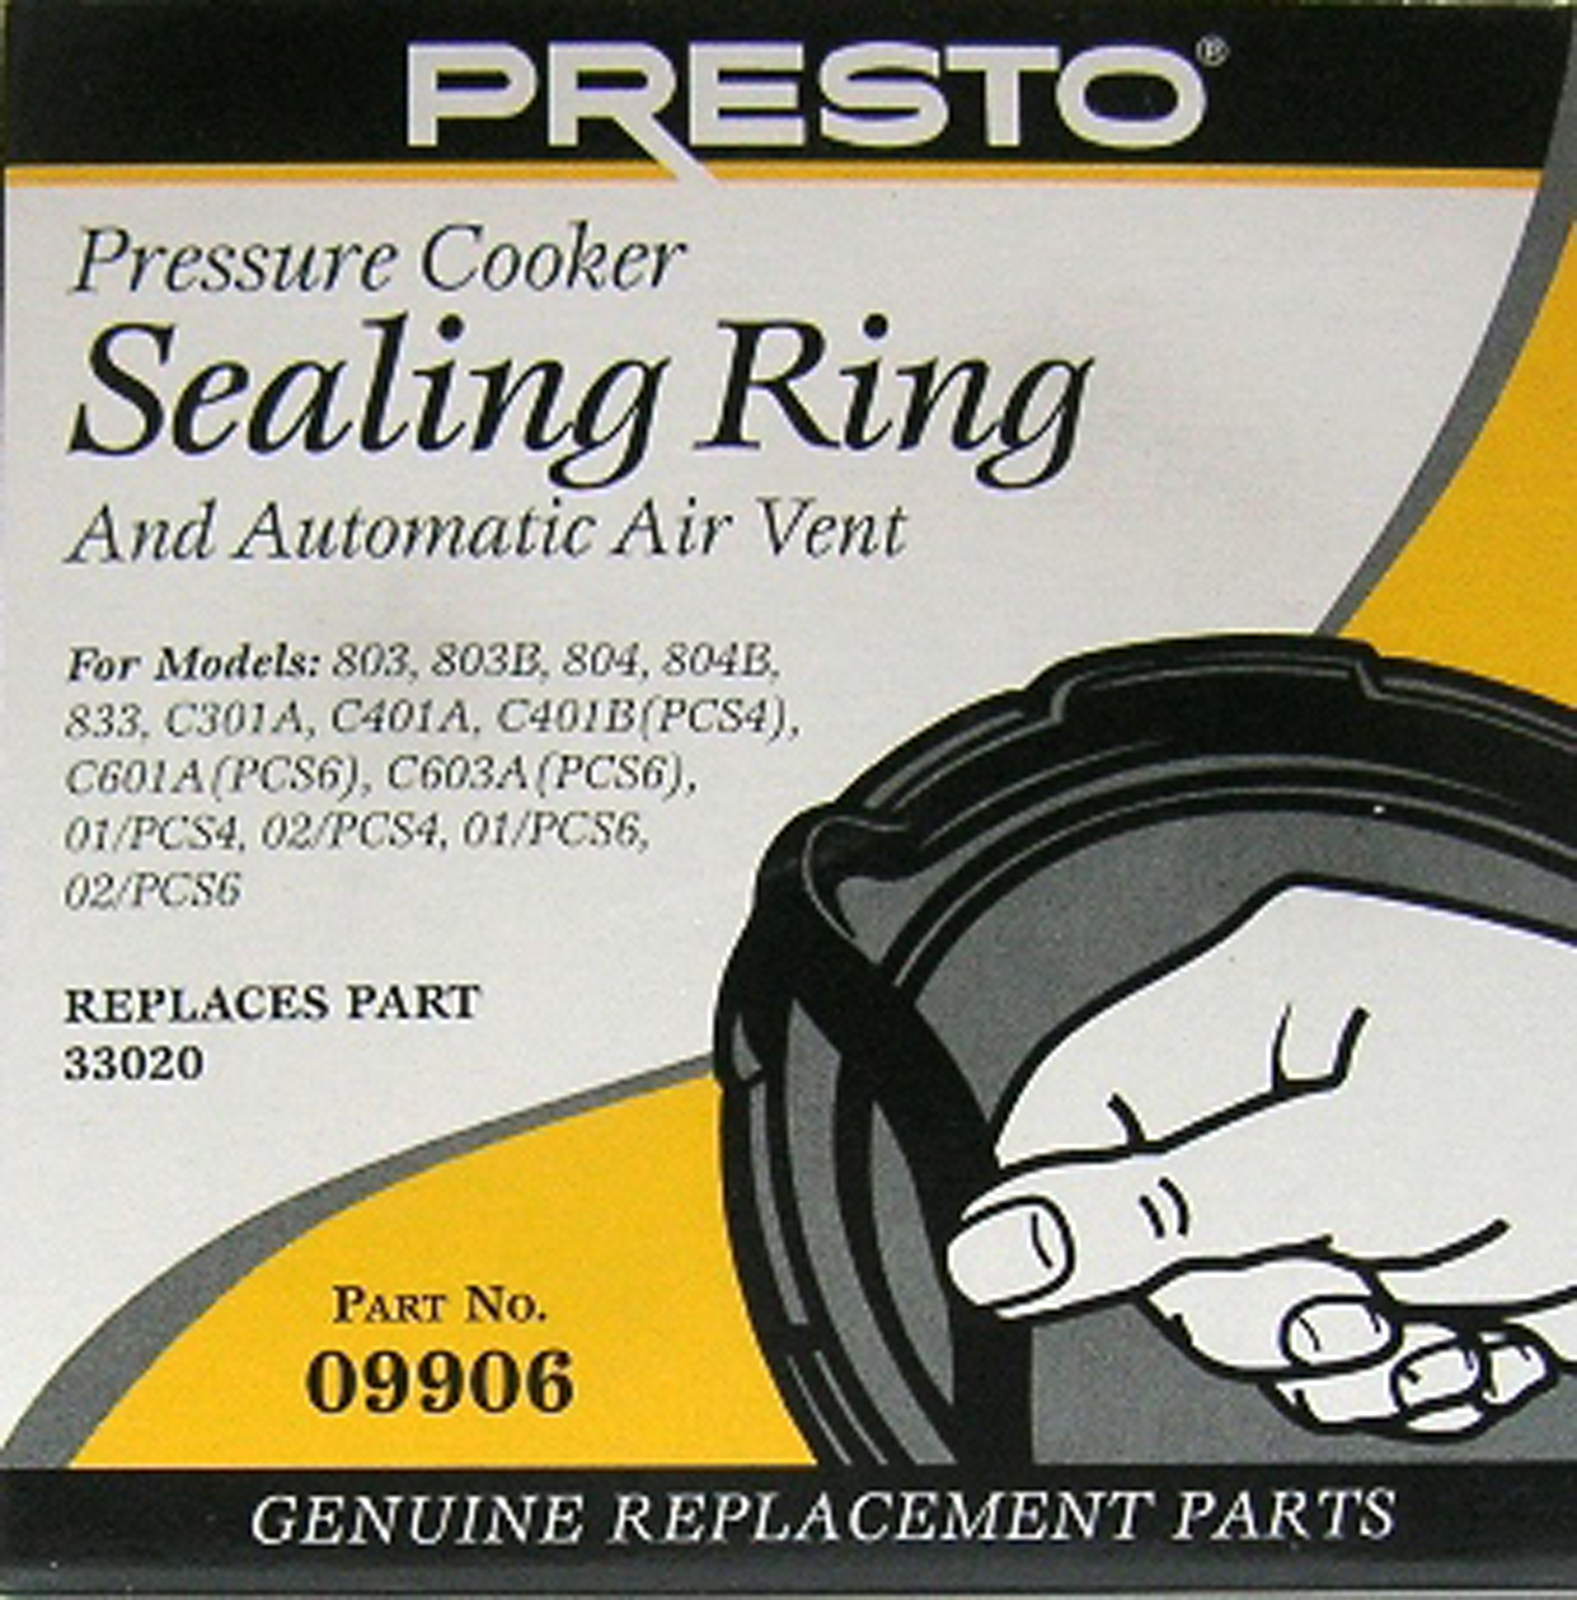 Presto Pressure Cooker Sealing Ring and Automatic Air Vent 09906 - $26.01